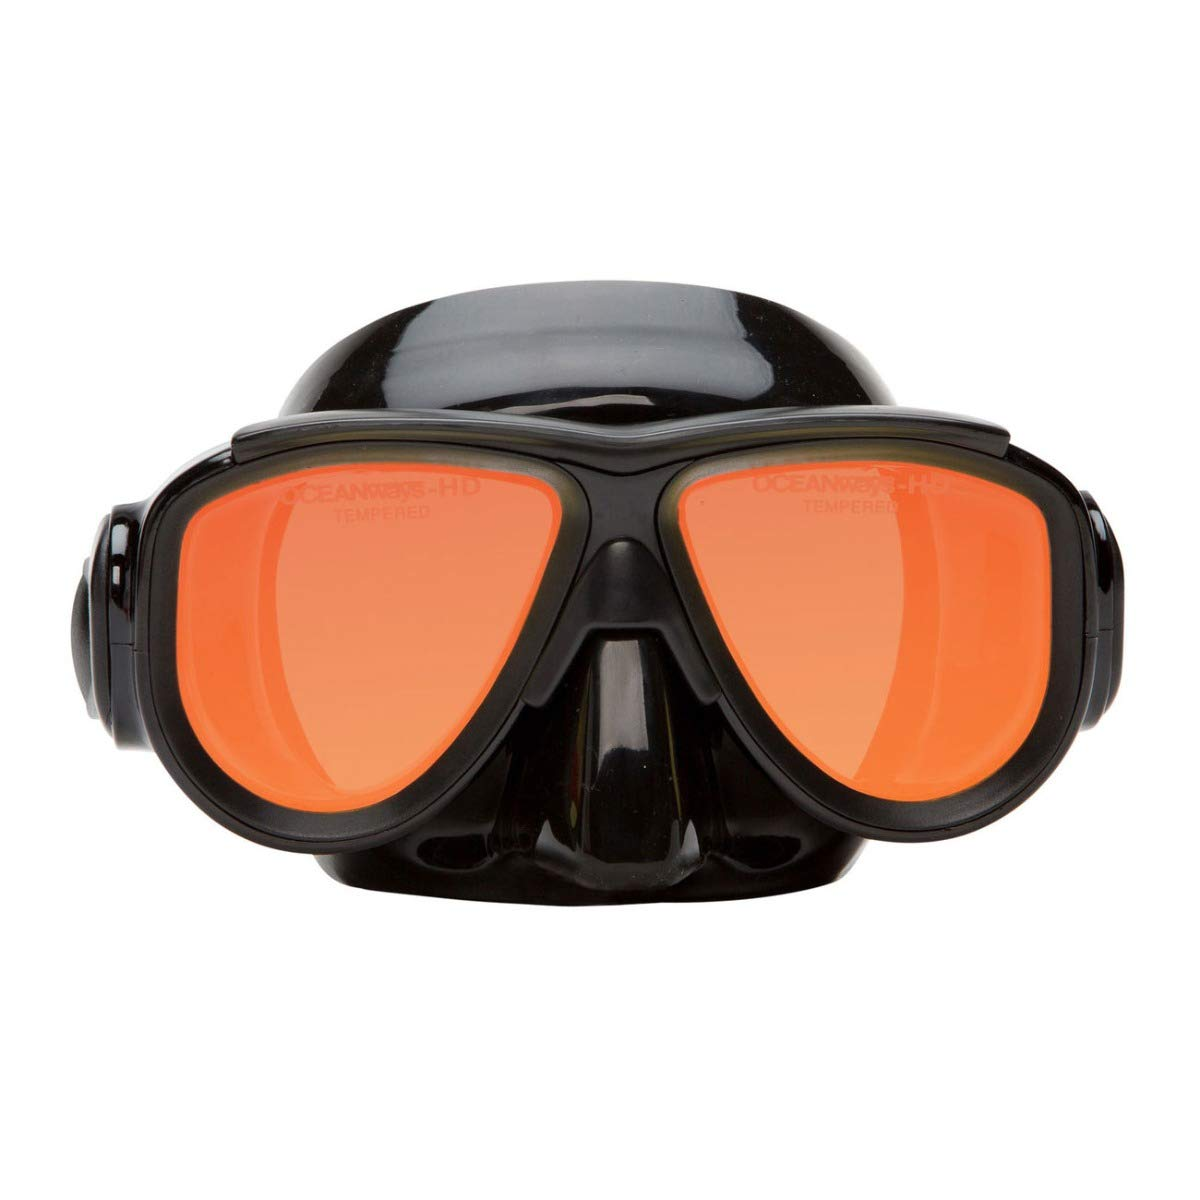 SeaDive Oceanways OceanCat-HD High Definition w/Anti-UV/Glare w/Anti-Fog Scuba/Spearfishing Dive Mask (OM964BKSFF) by SeaDive